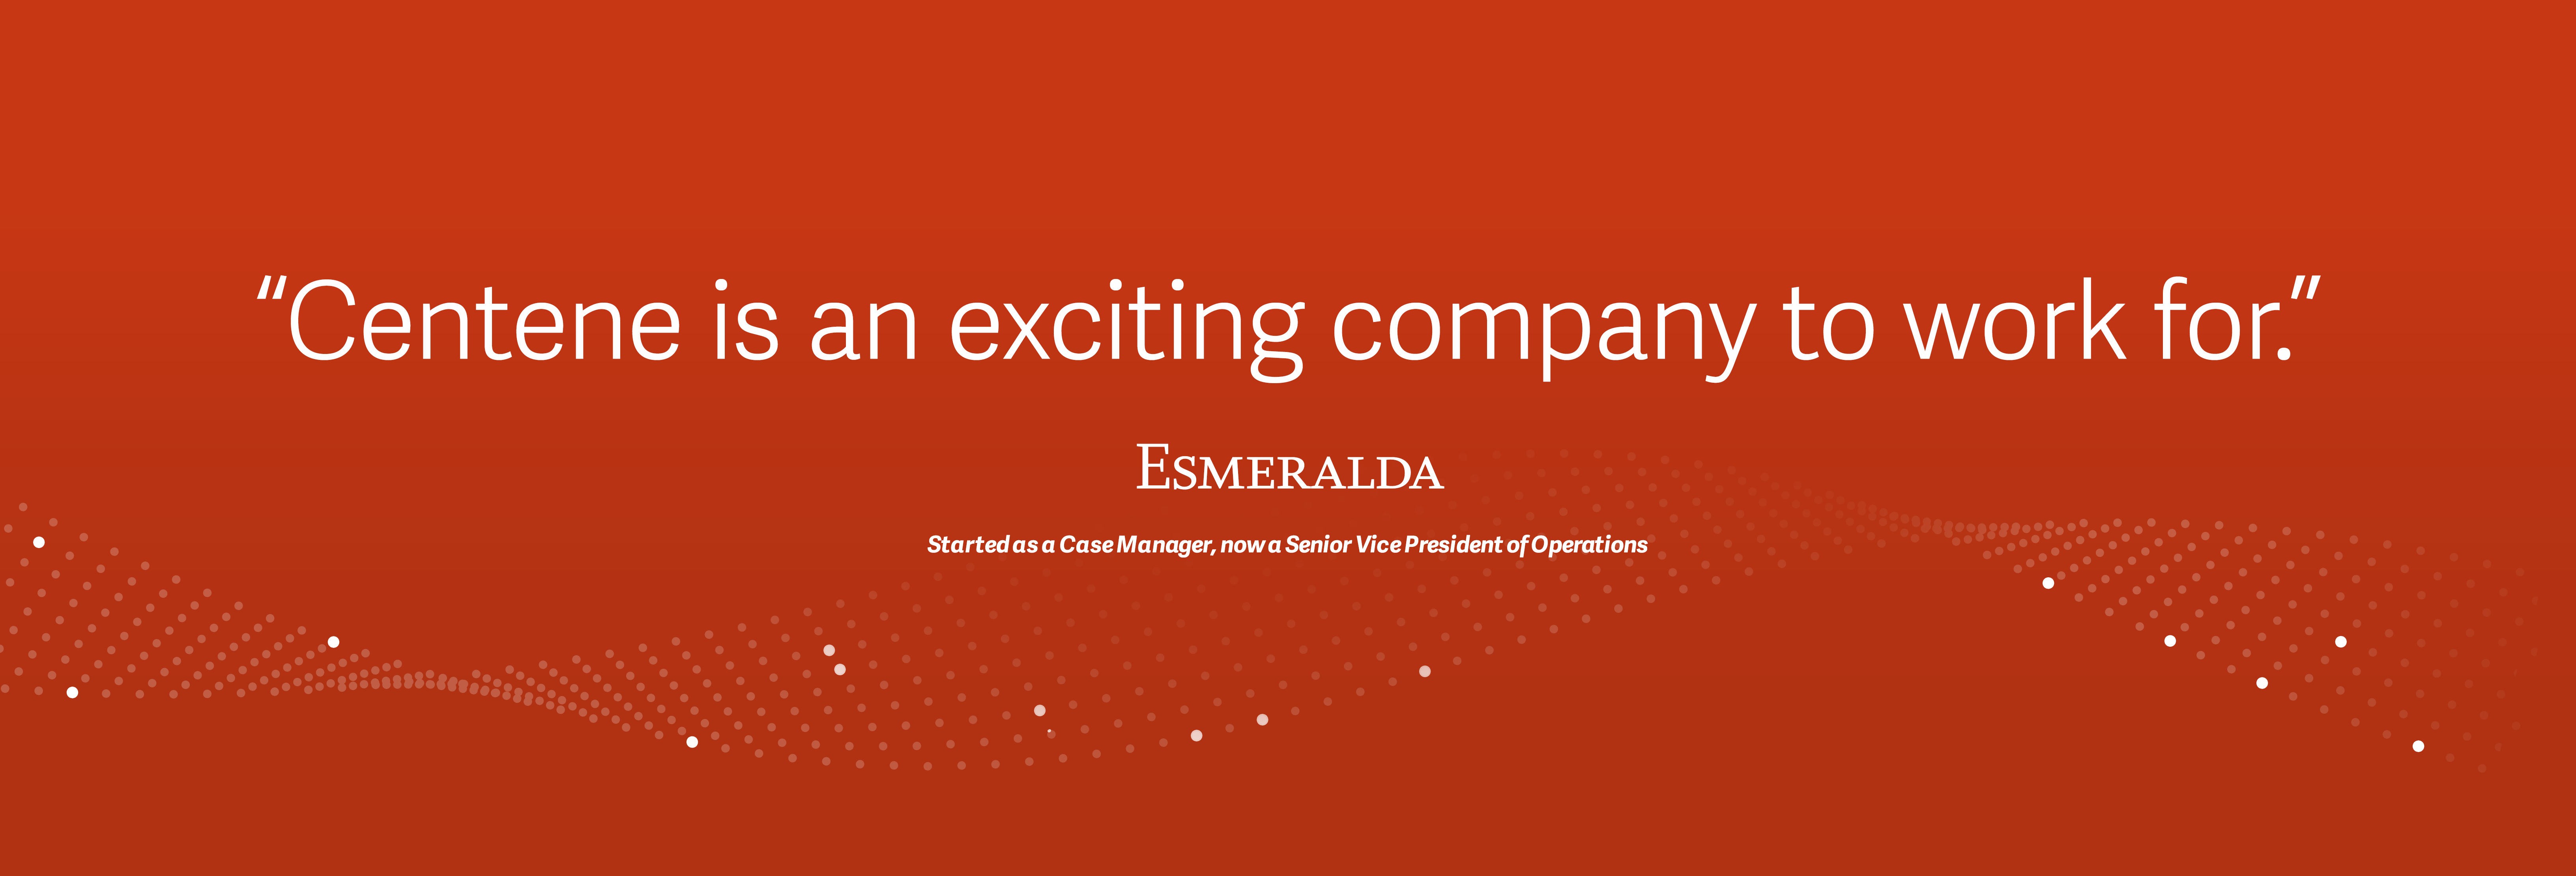 """Centene is an exciting company to work for"", Esmeralda"